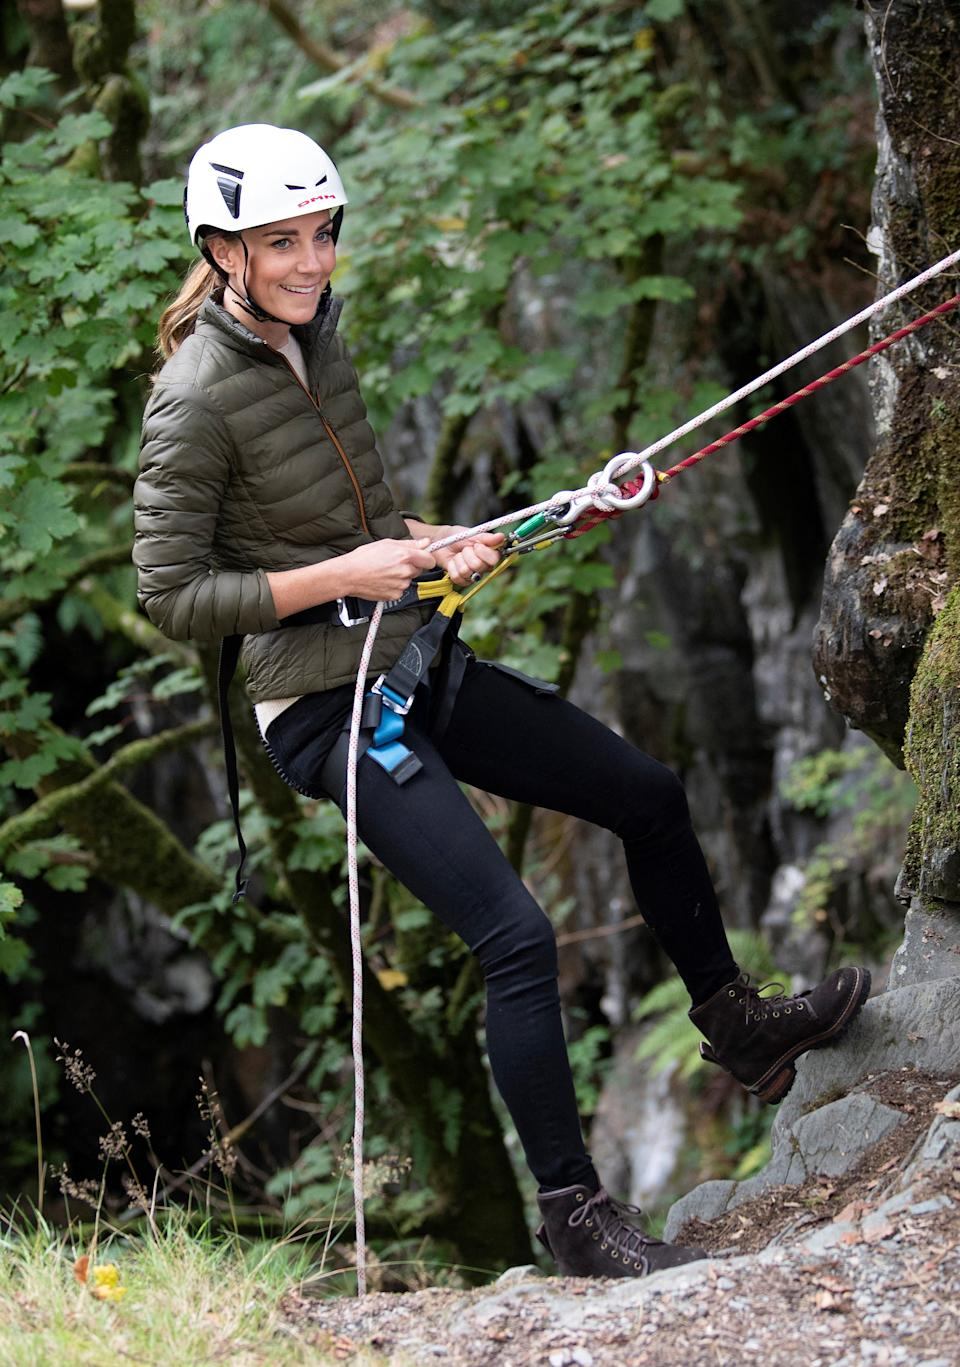 Britain's Catherine, Duchess of Cambridge, uses abseiling gear as she visits Royal Air Force (RAF) Air Cadets at their Windermere Adventure Training Centre near Ambleside in north west England on September 21, 2021. (Photo by Andy Stenning / POOL / AFP) (Photo by ANDY STENNING/POOL/AFP via Getty Images)